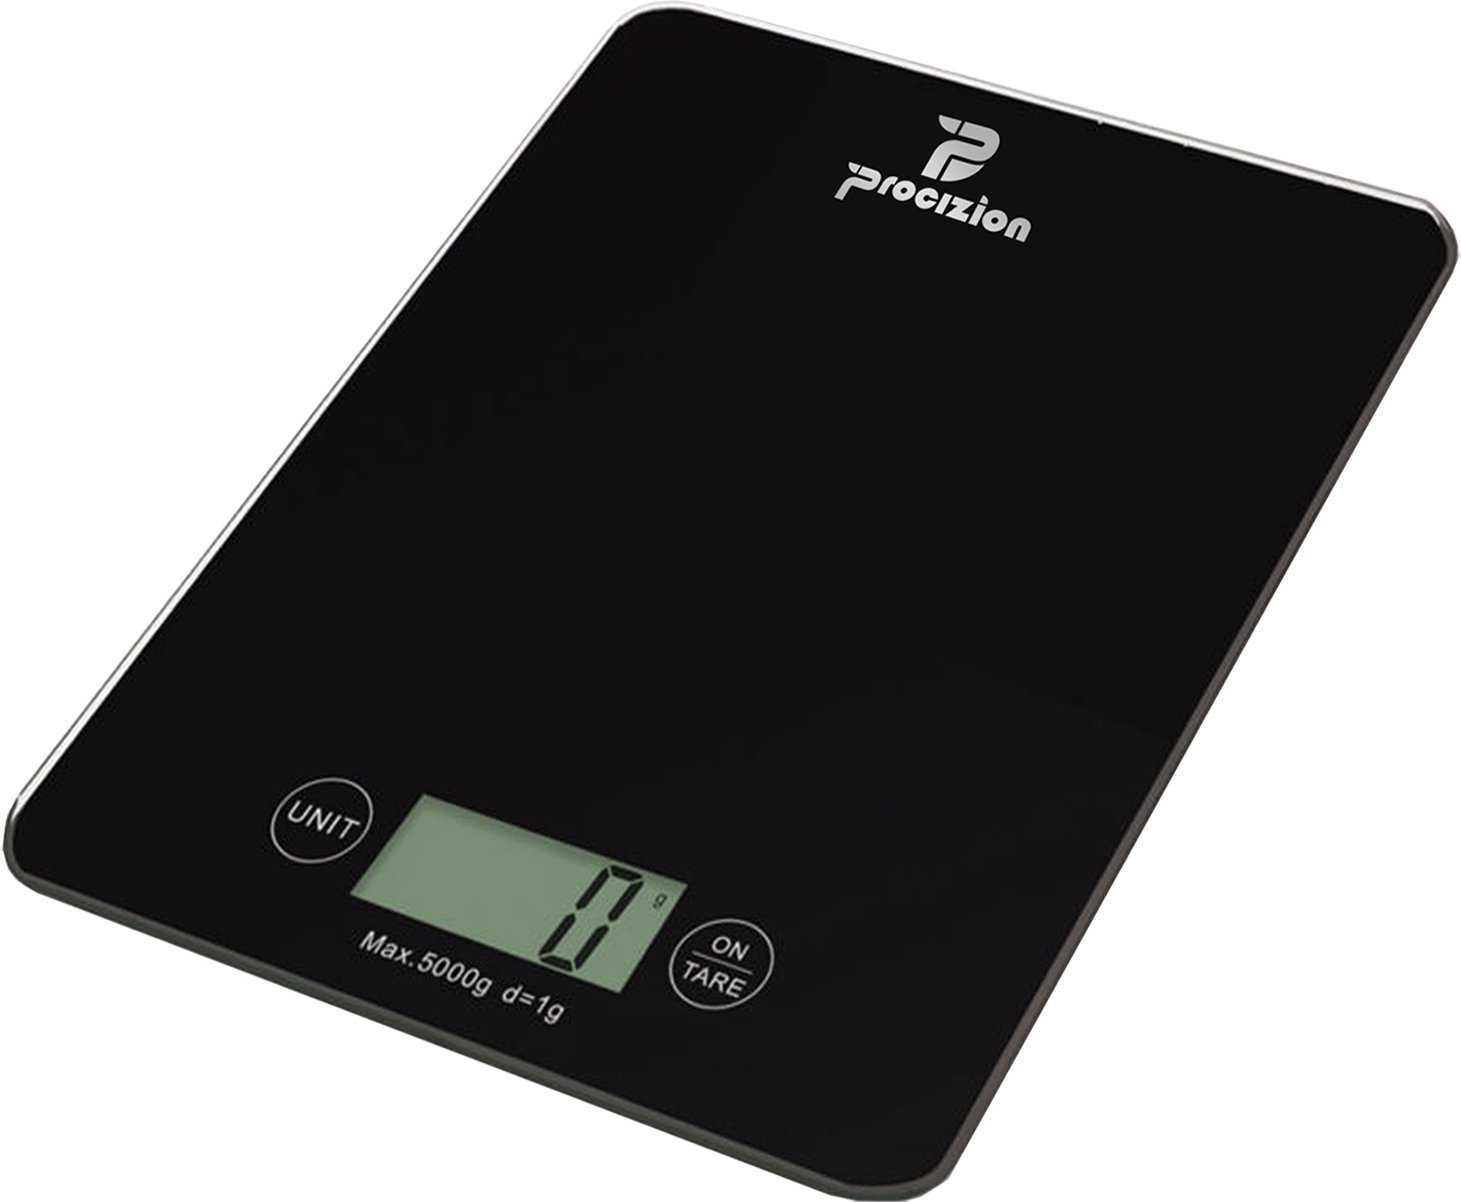 Procizion pro8006b digital kitchen food scale best for Perfect scale pro reviews